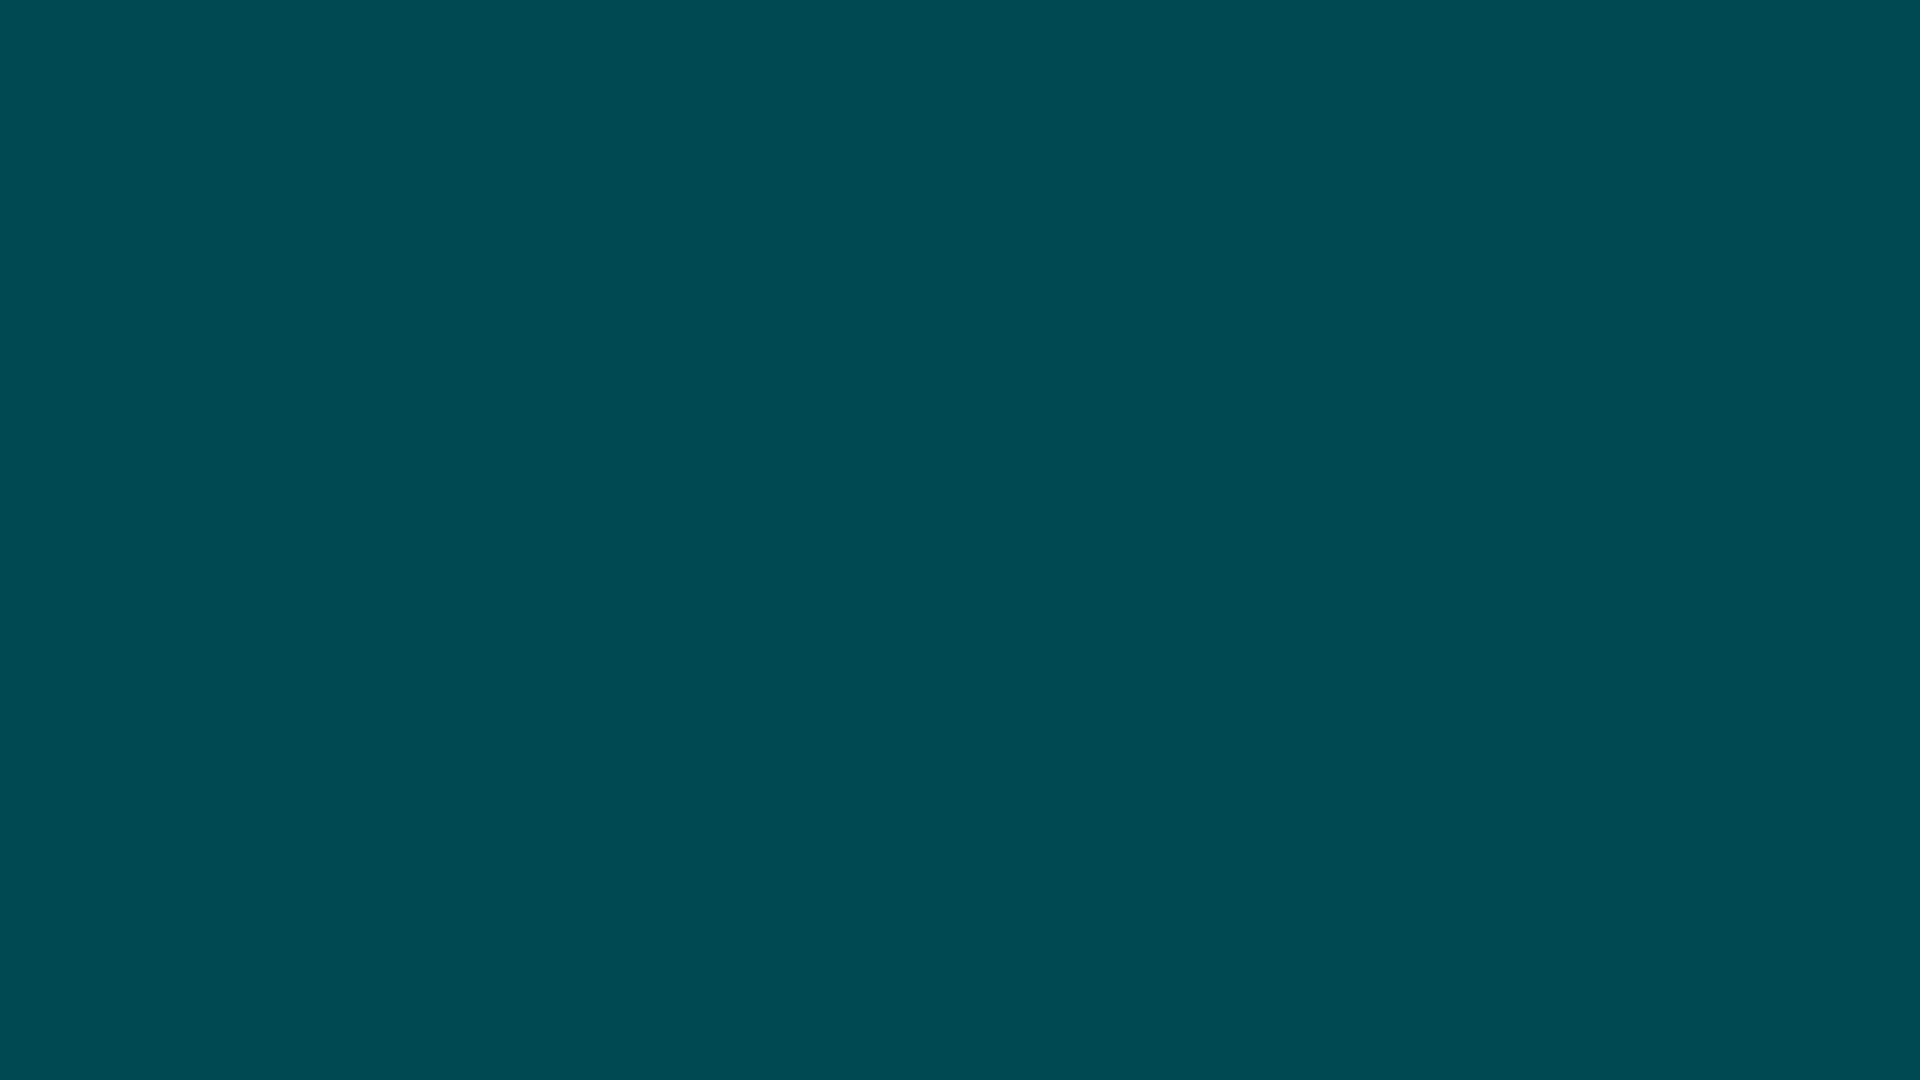 1920x1080 Midnight Green Solid Color Background